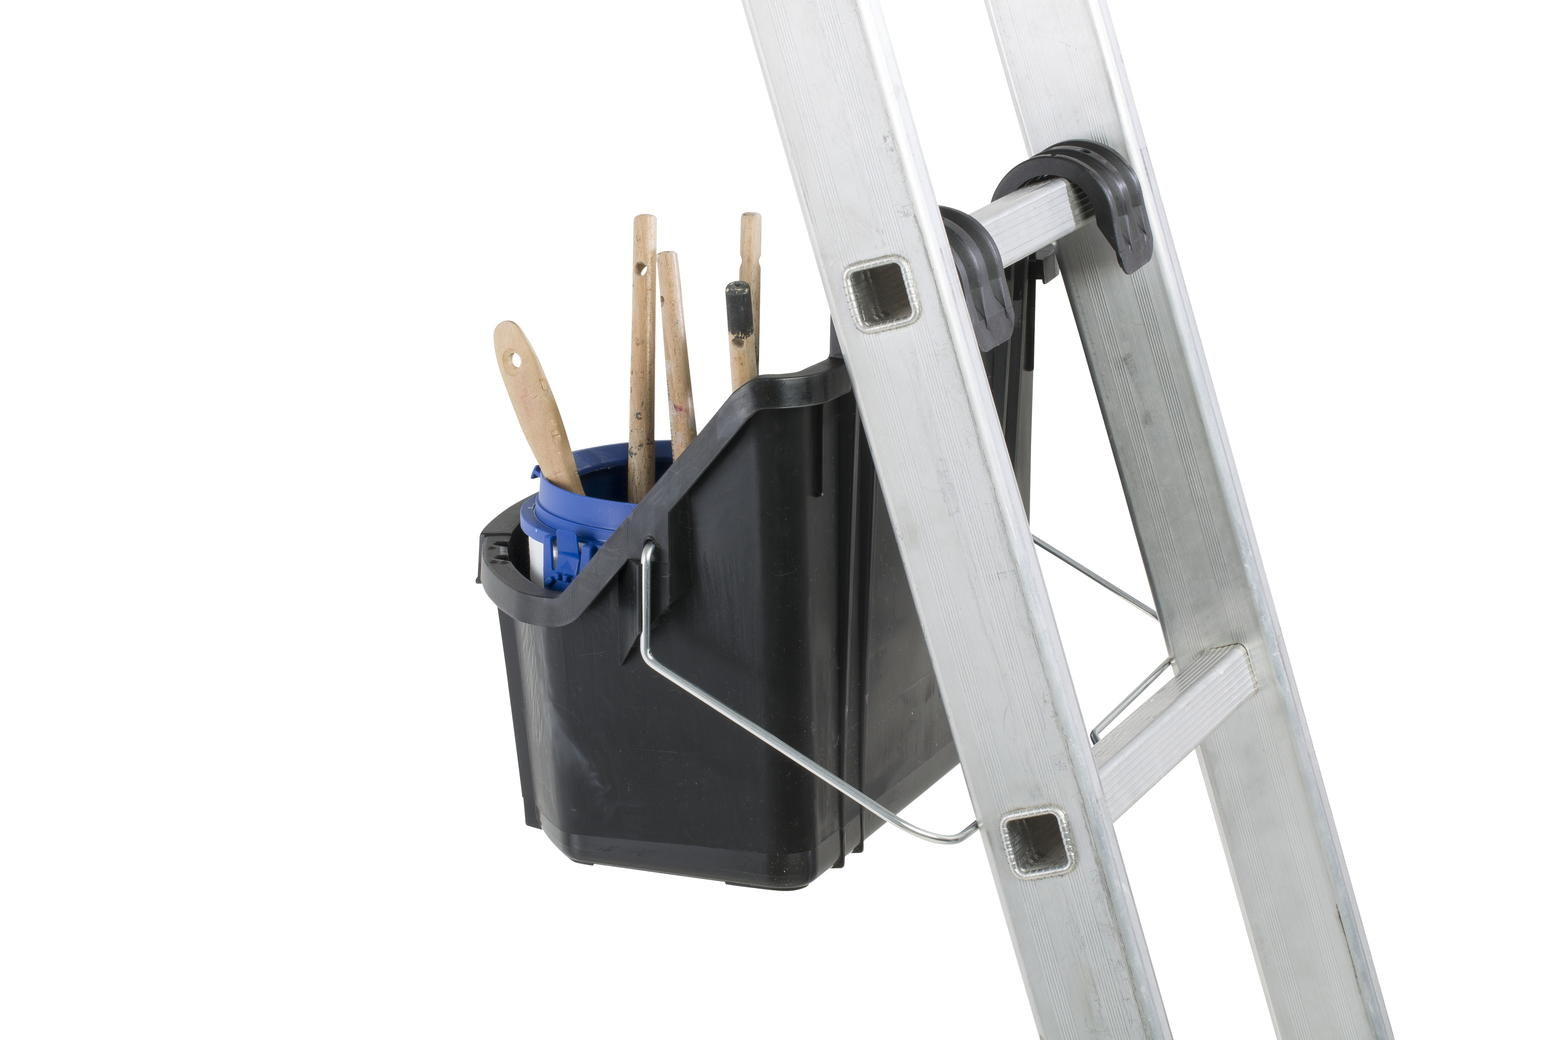 Even stable on a ladder